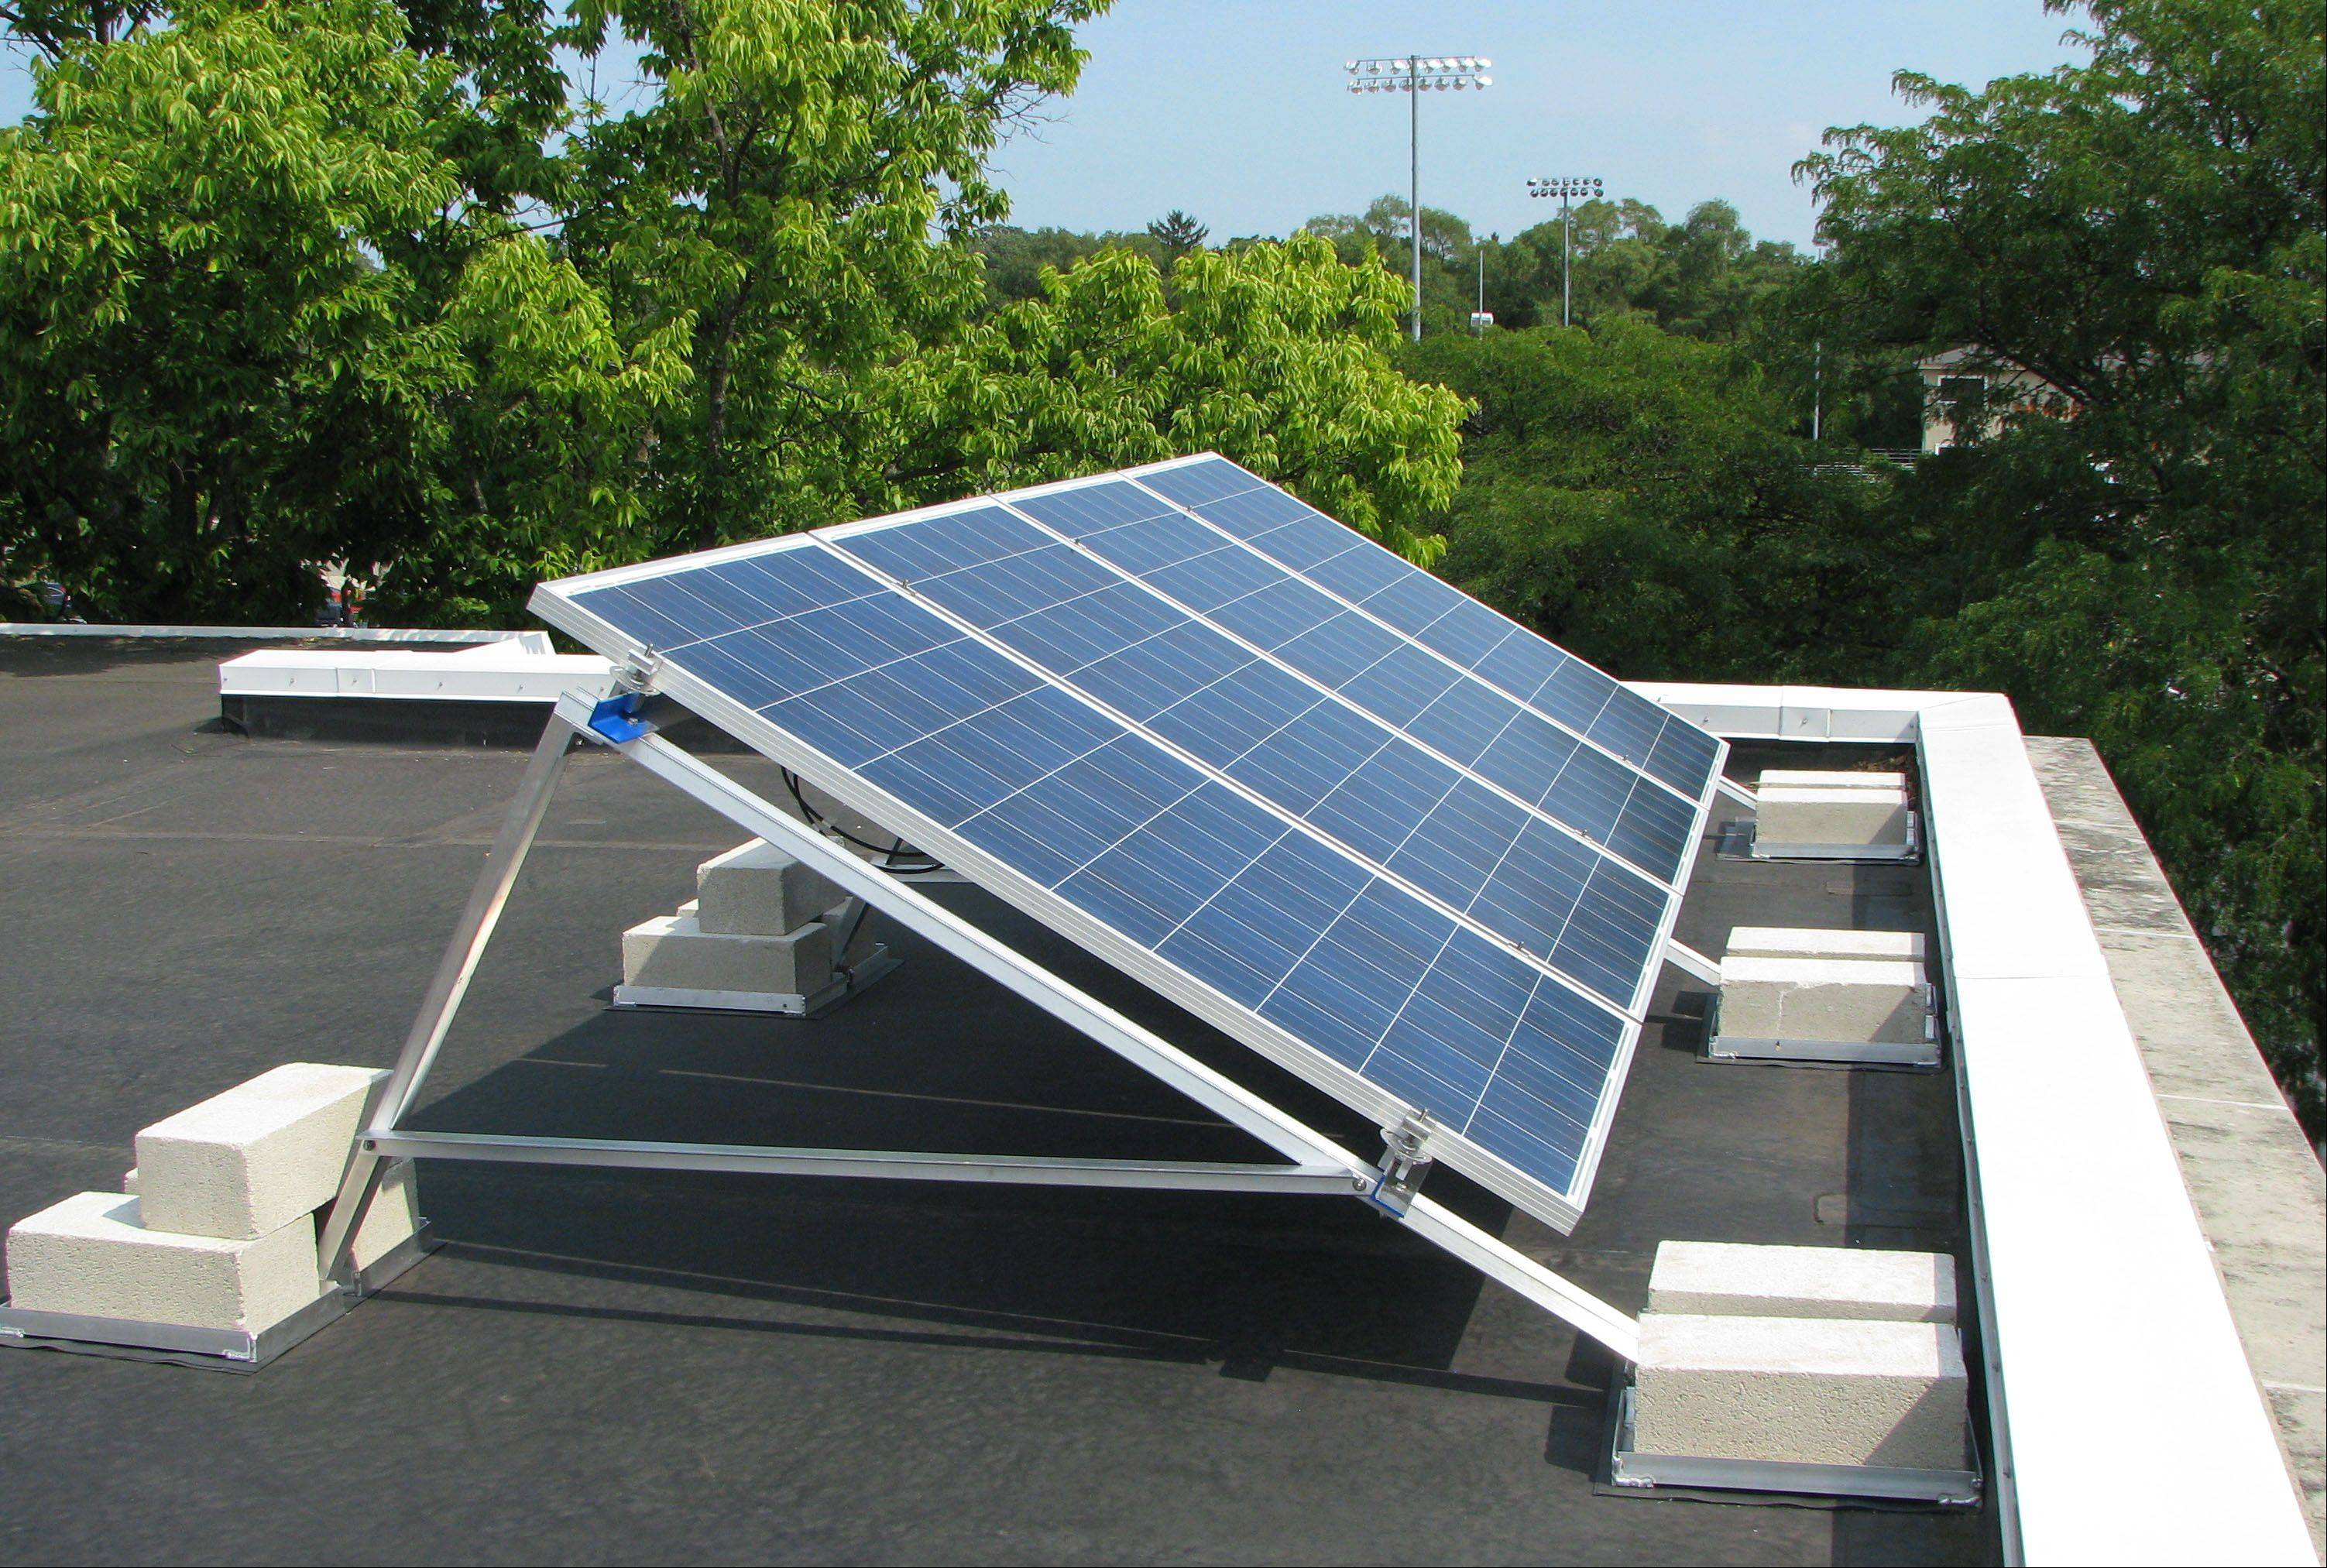 Libertyville High turning to sun for energy